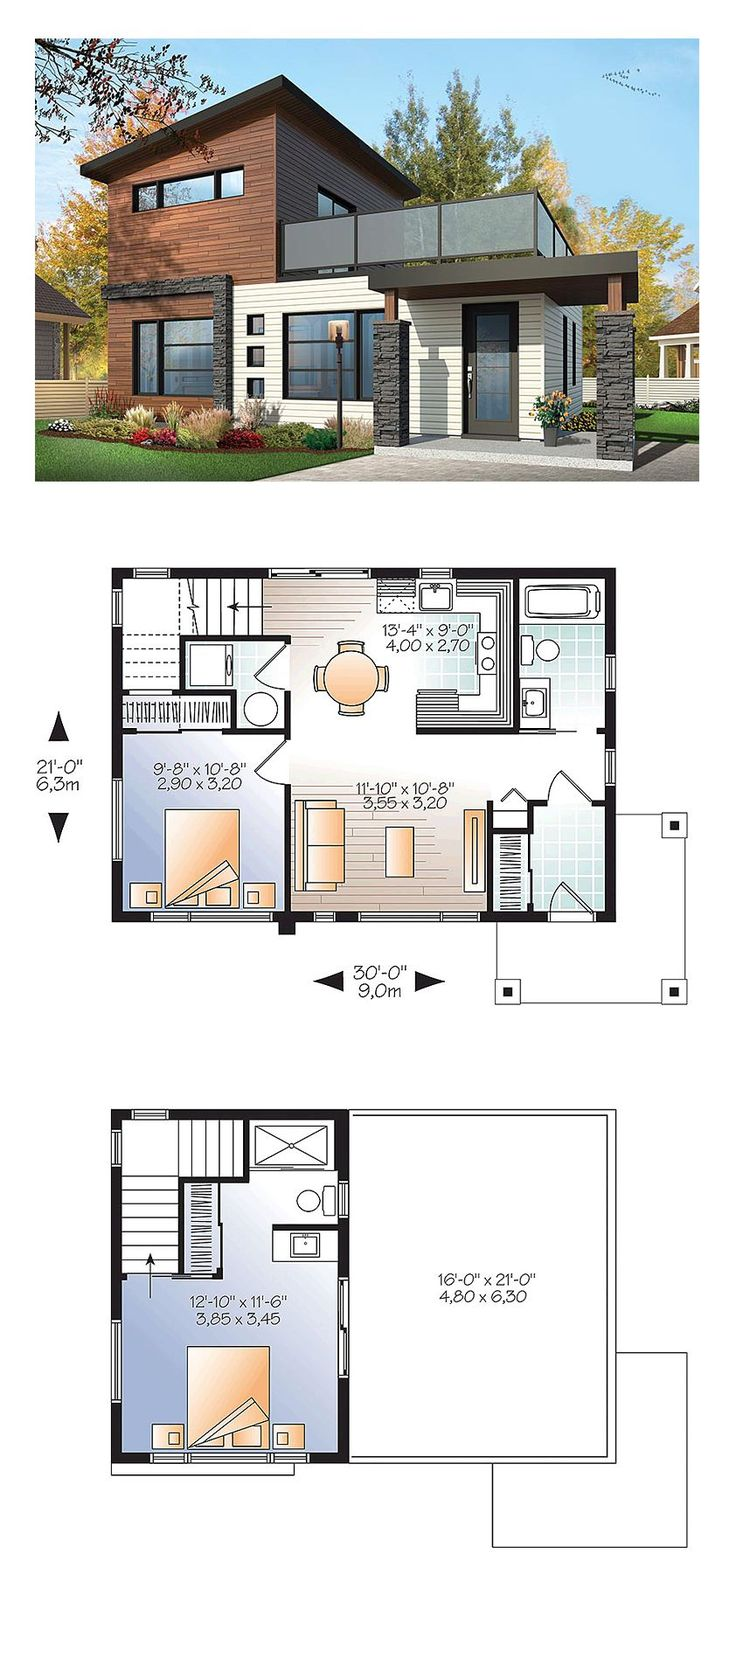 25 best ideas about modern house plans on pinterest unique modern house plans modern house floor plans free